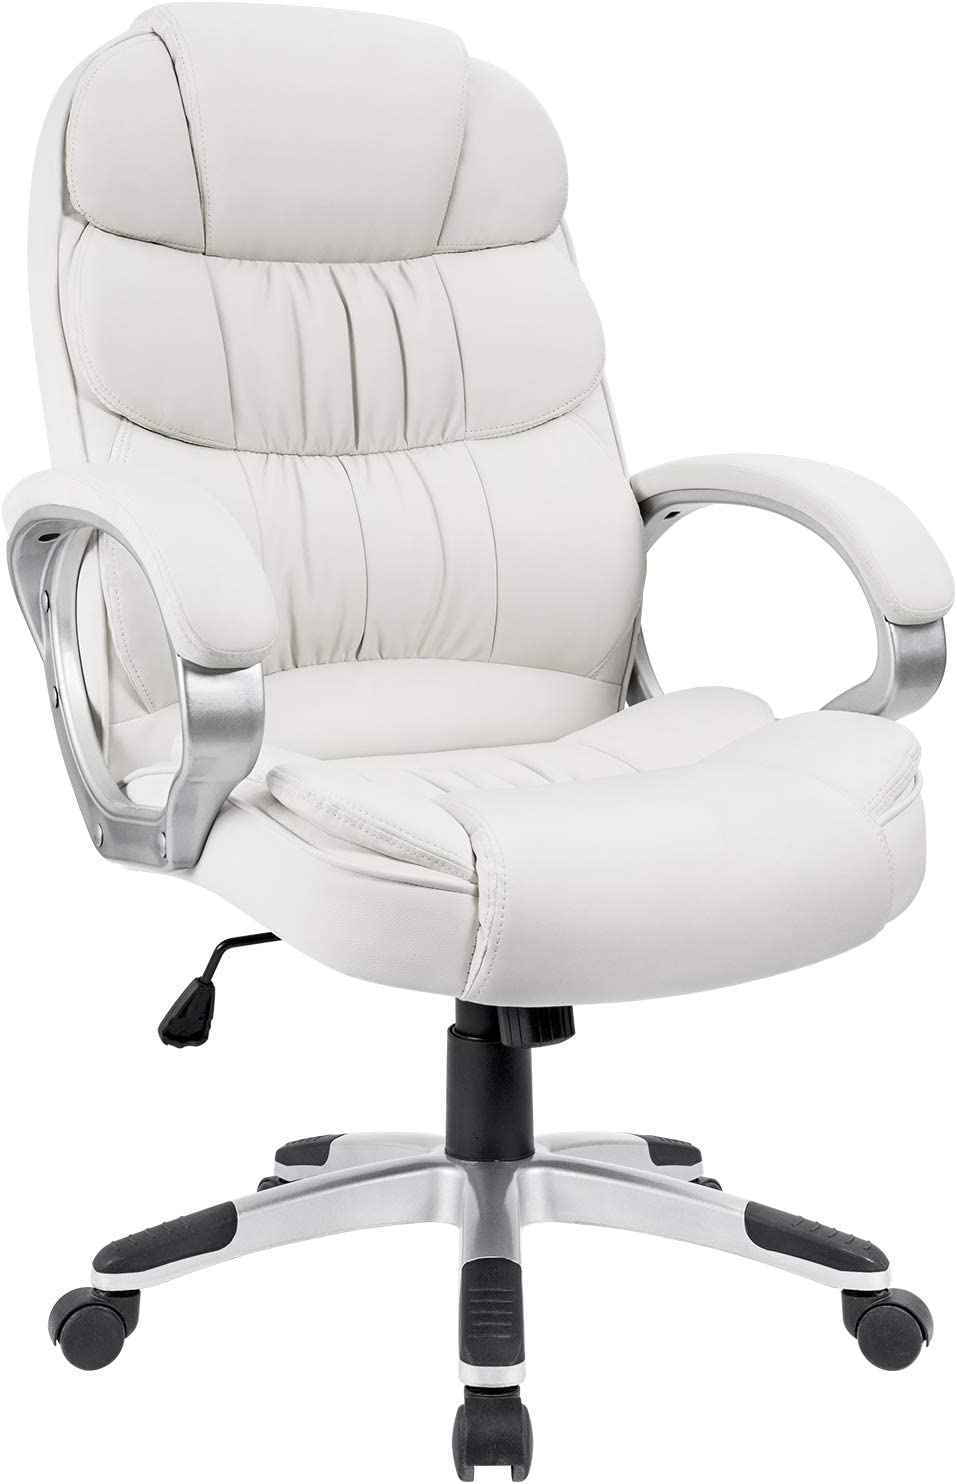 Homall Office Chair High Back Computer Chair Ergonomic Desk Chair, PU  Leather Adjustable Height Modern Executive Swivel Task Chair with Padded